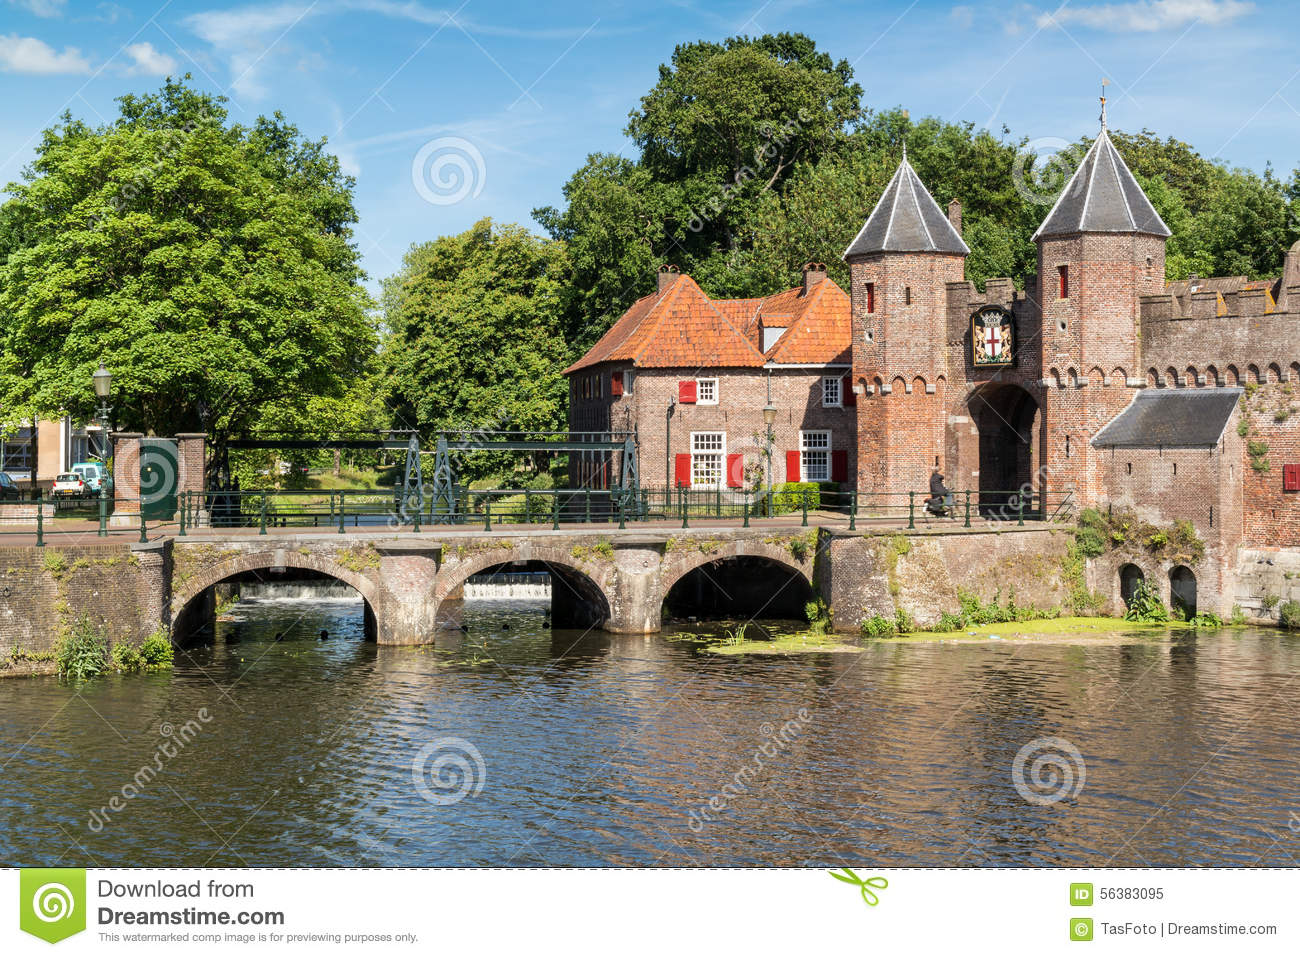 City Gate Koppelpoort In Amersfoort, Netherlands Stock Photo.